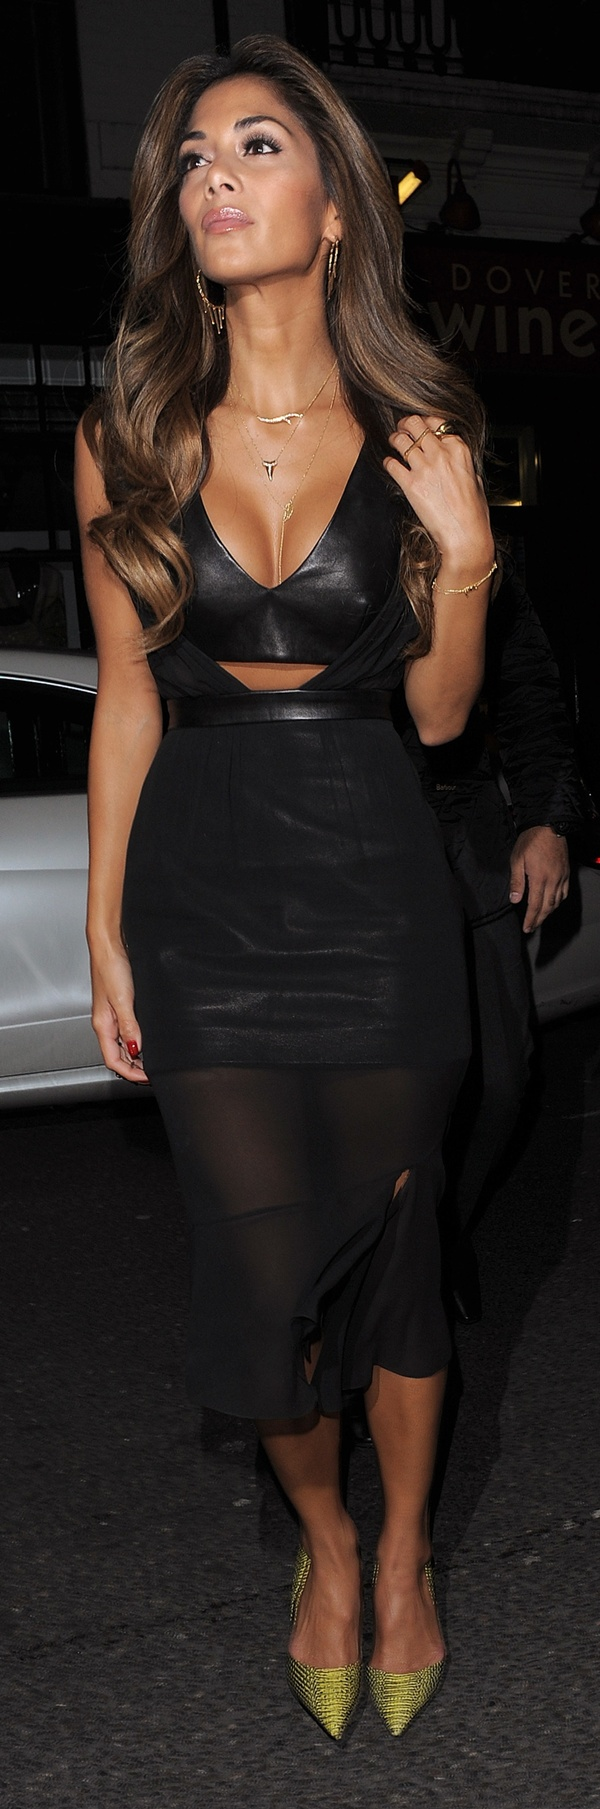 Nicole Scherzinger paired her heels with a black Guy Laroche outfit that included a leather bustier, a leather miniskirt, and a chiffon overlay